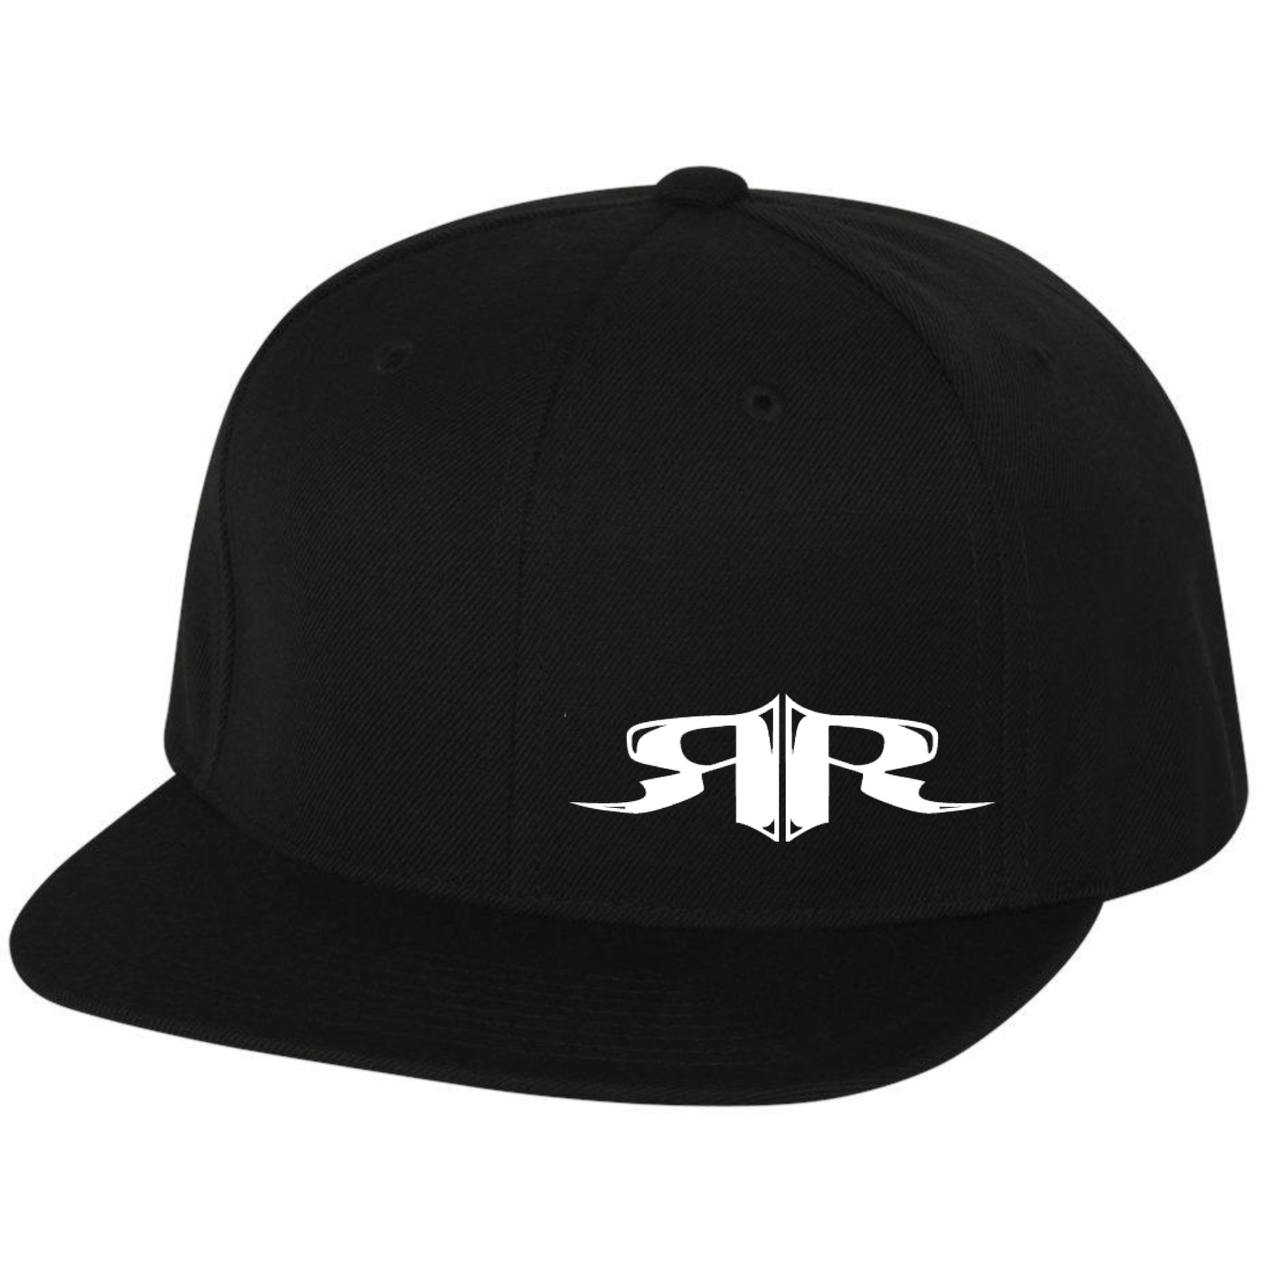 RUHNE RACING | ICON SERIES - FLAT BILL SNAPBACK CAP (BLACK)